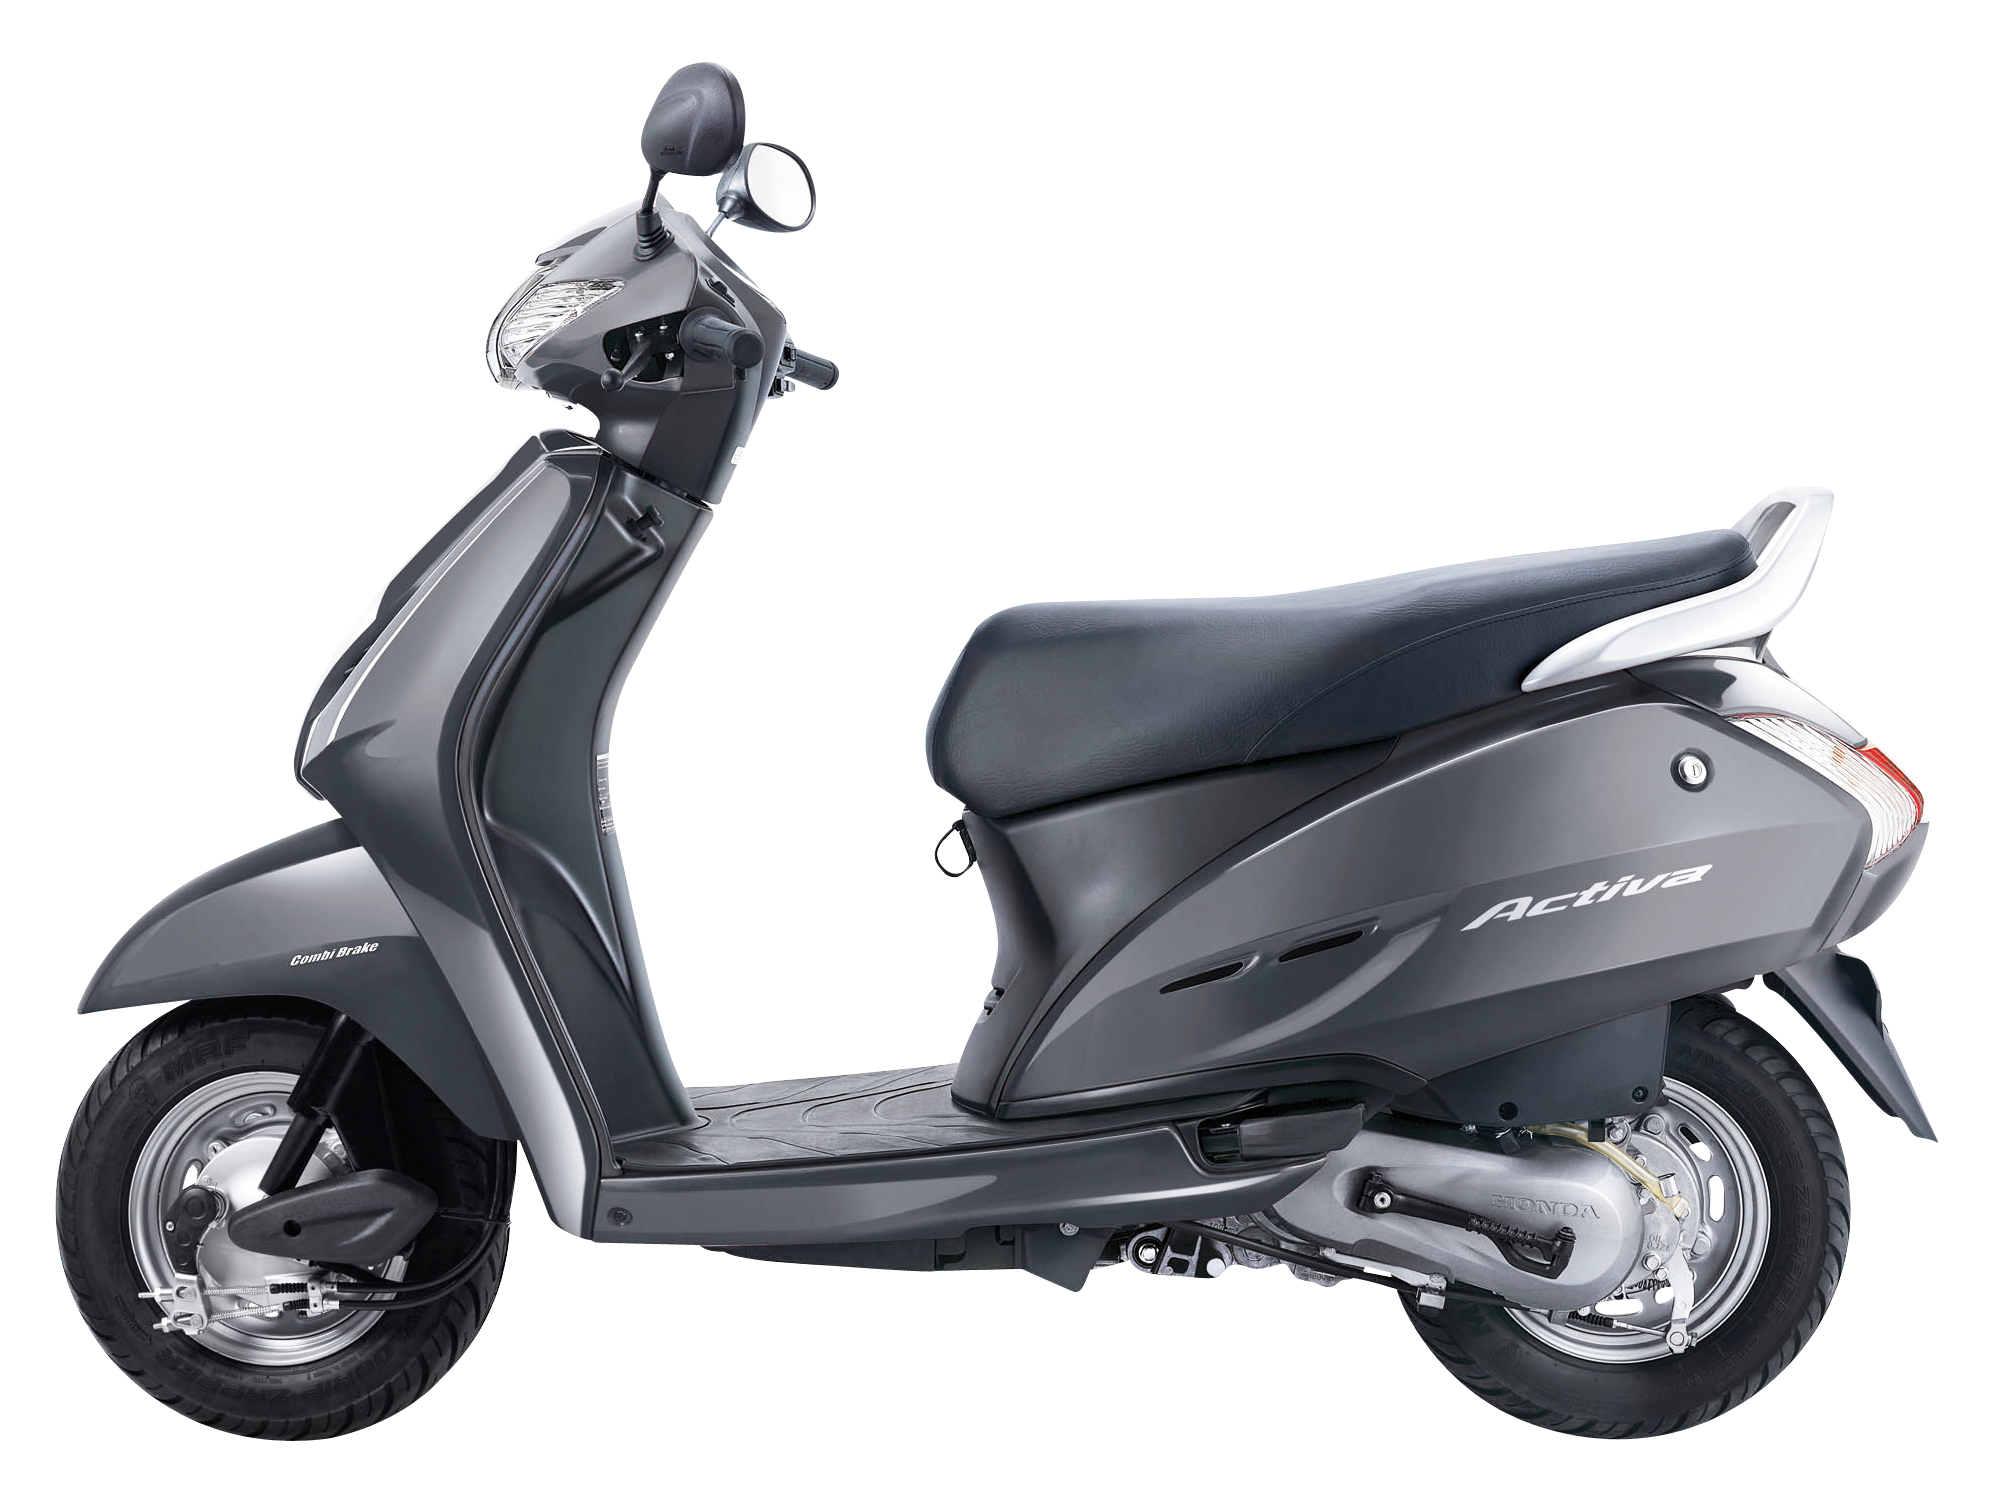 Honda Activa 3G Scooty PNG Image